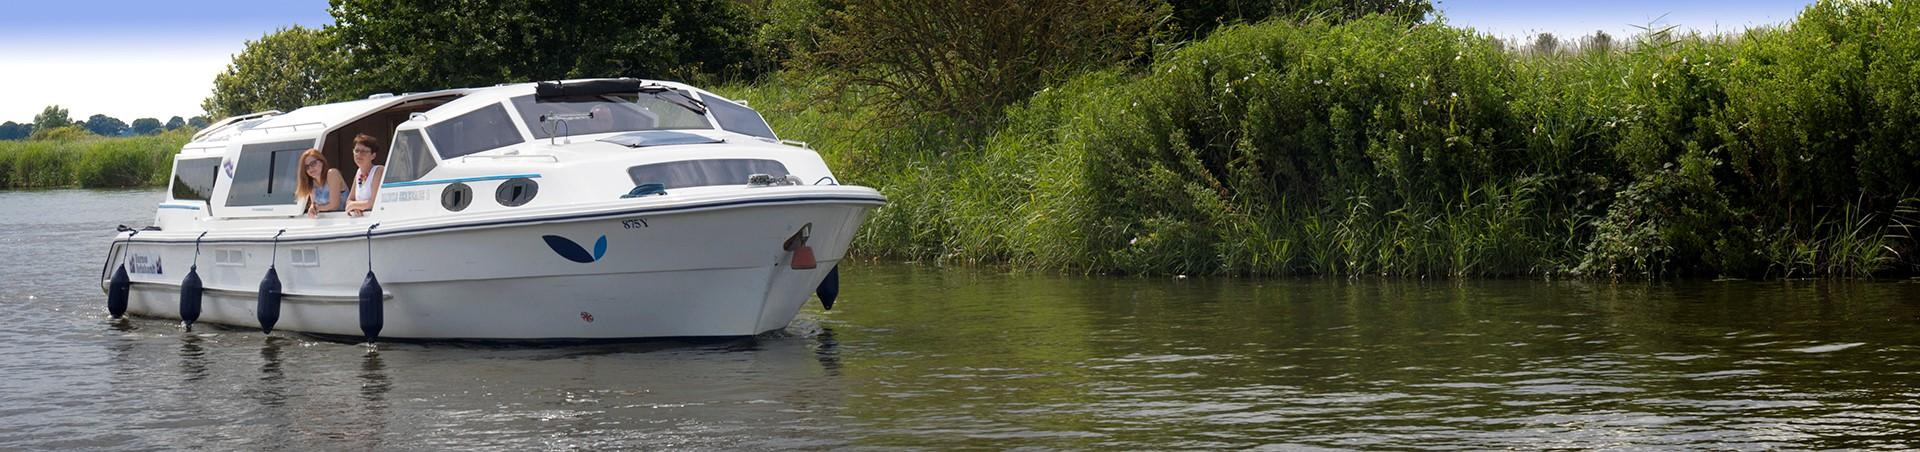 Brinks Serenade Boat - Norfolk Broads - For Hire